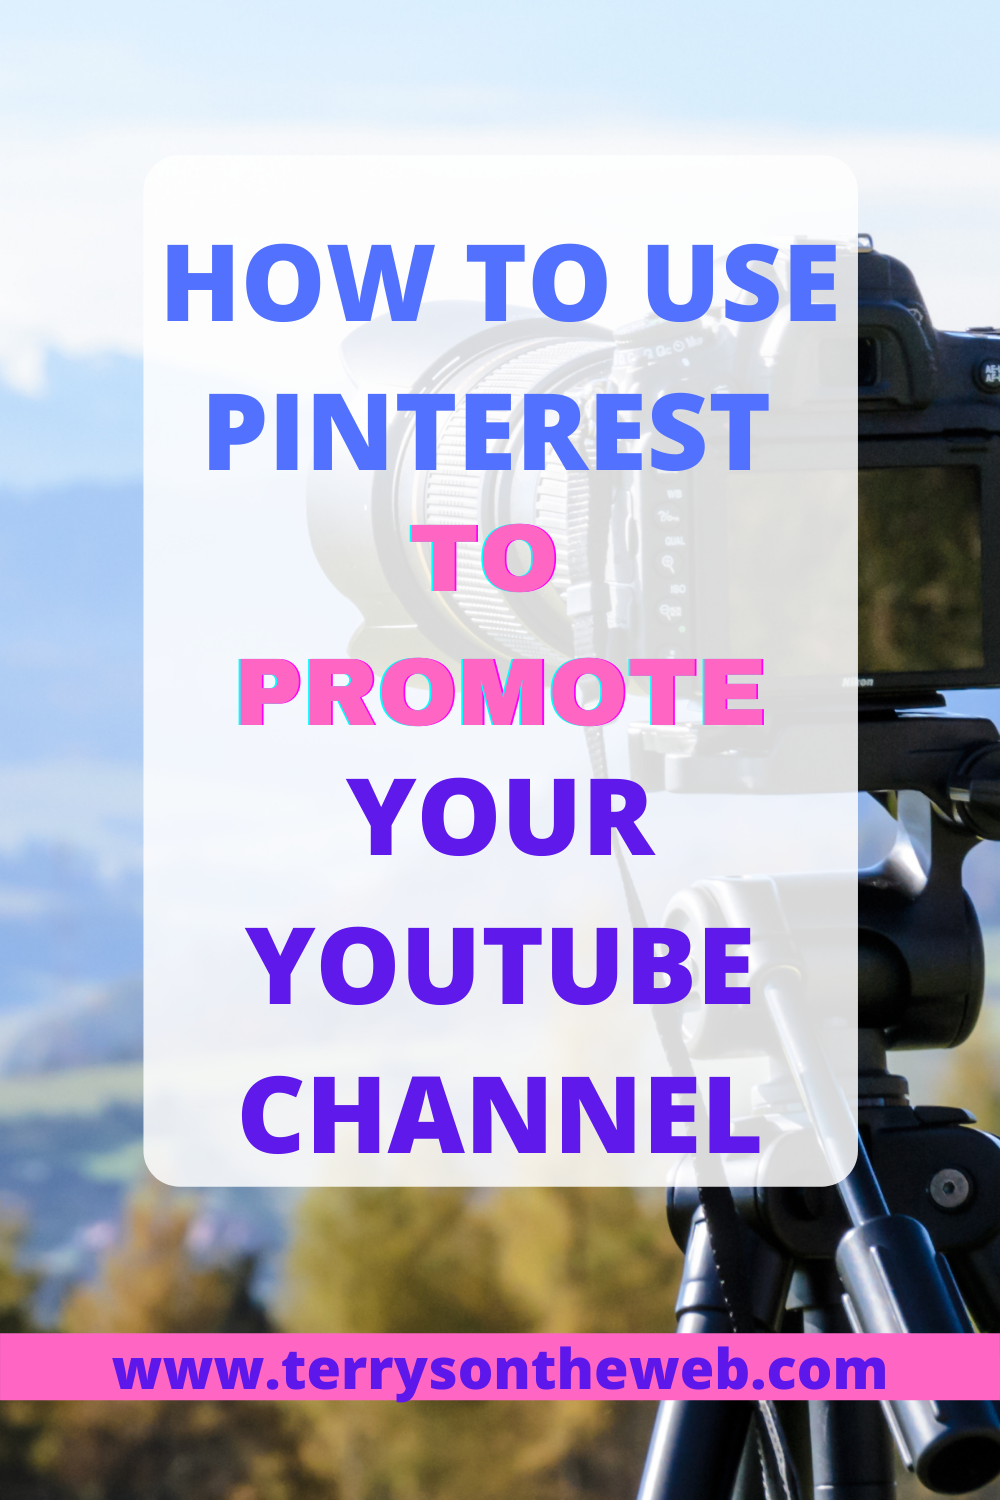 How To Use Pinterest To Promote Your Youtube Channel You Youtube Instagram Life Pinterest Management